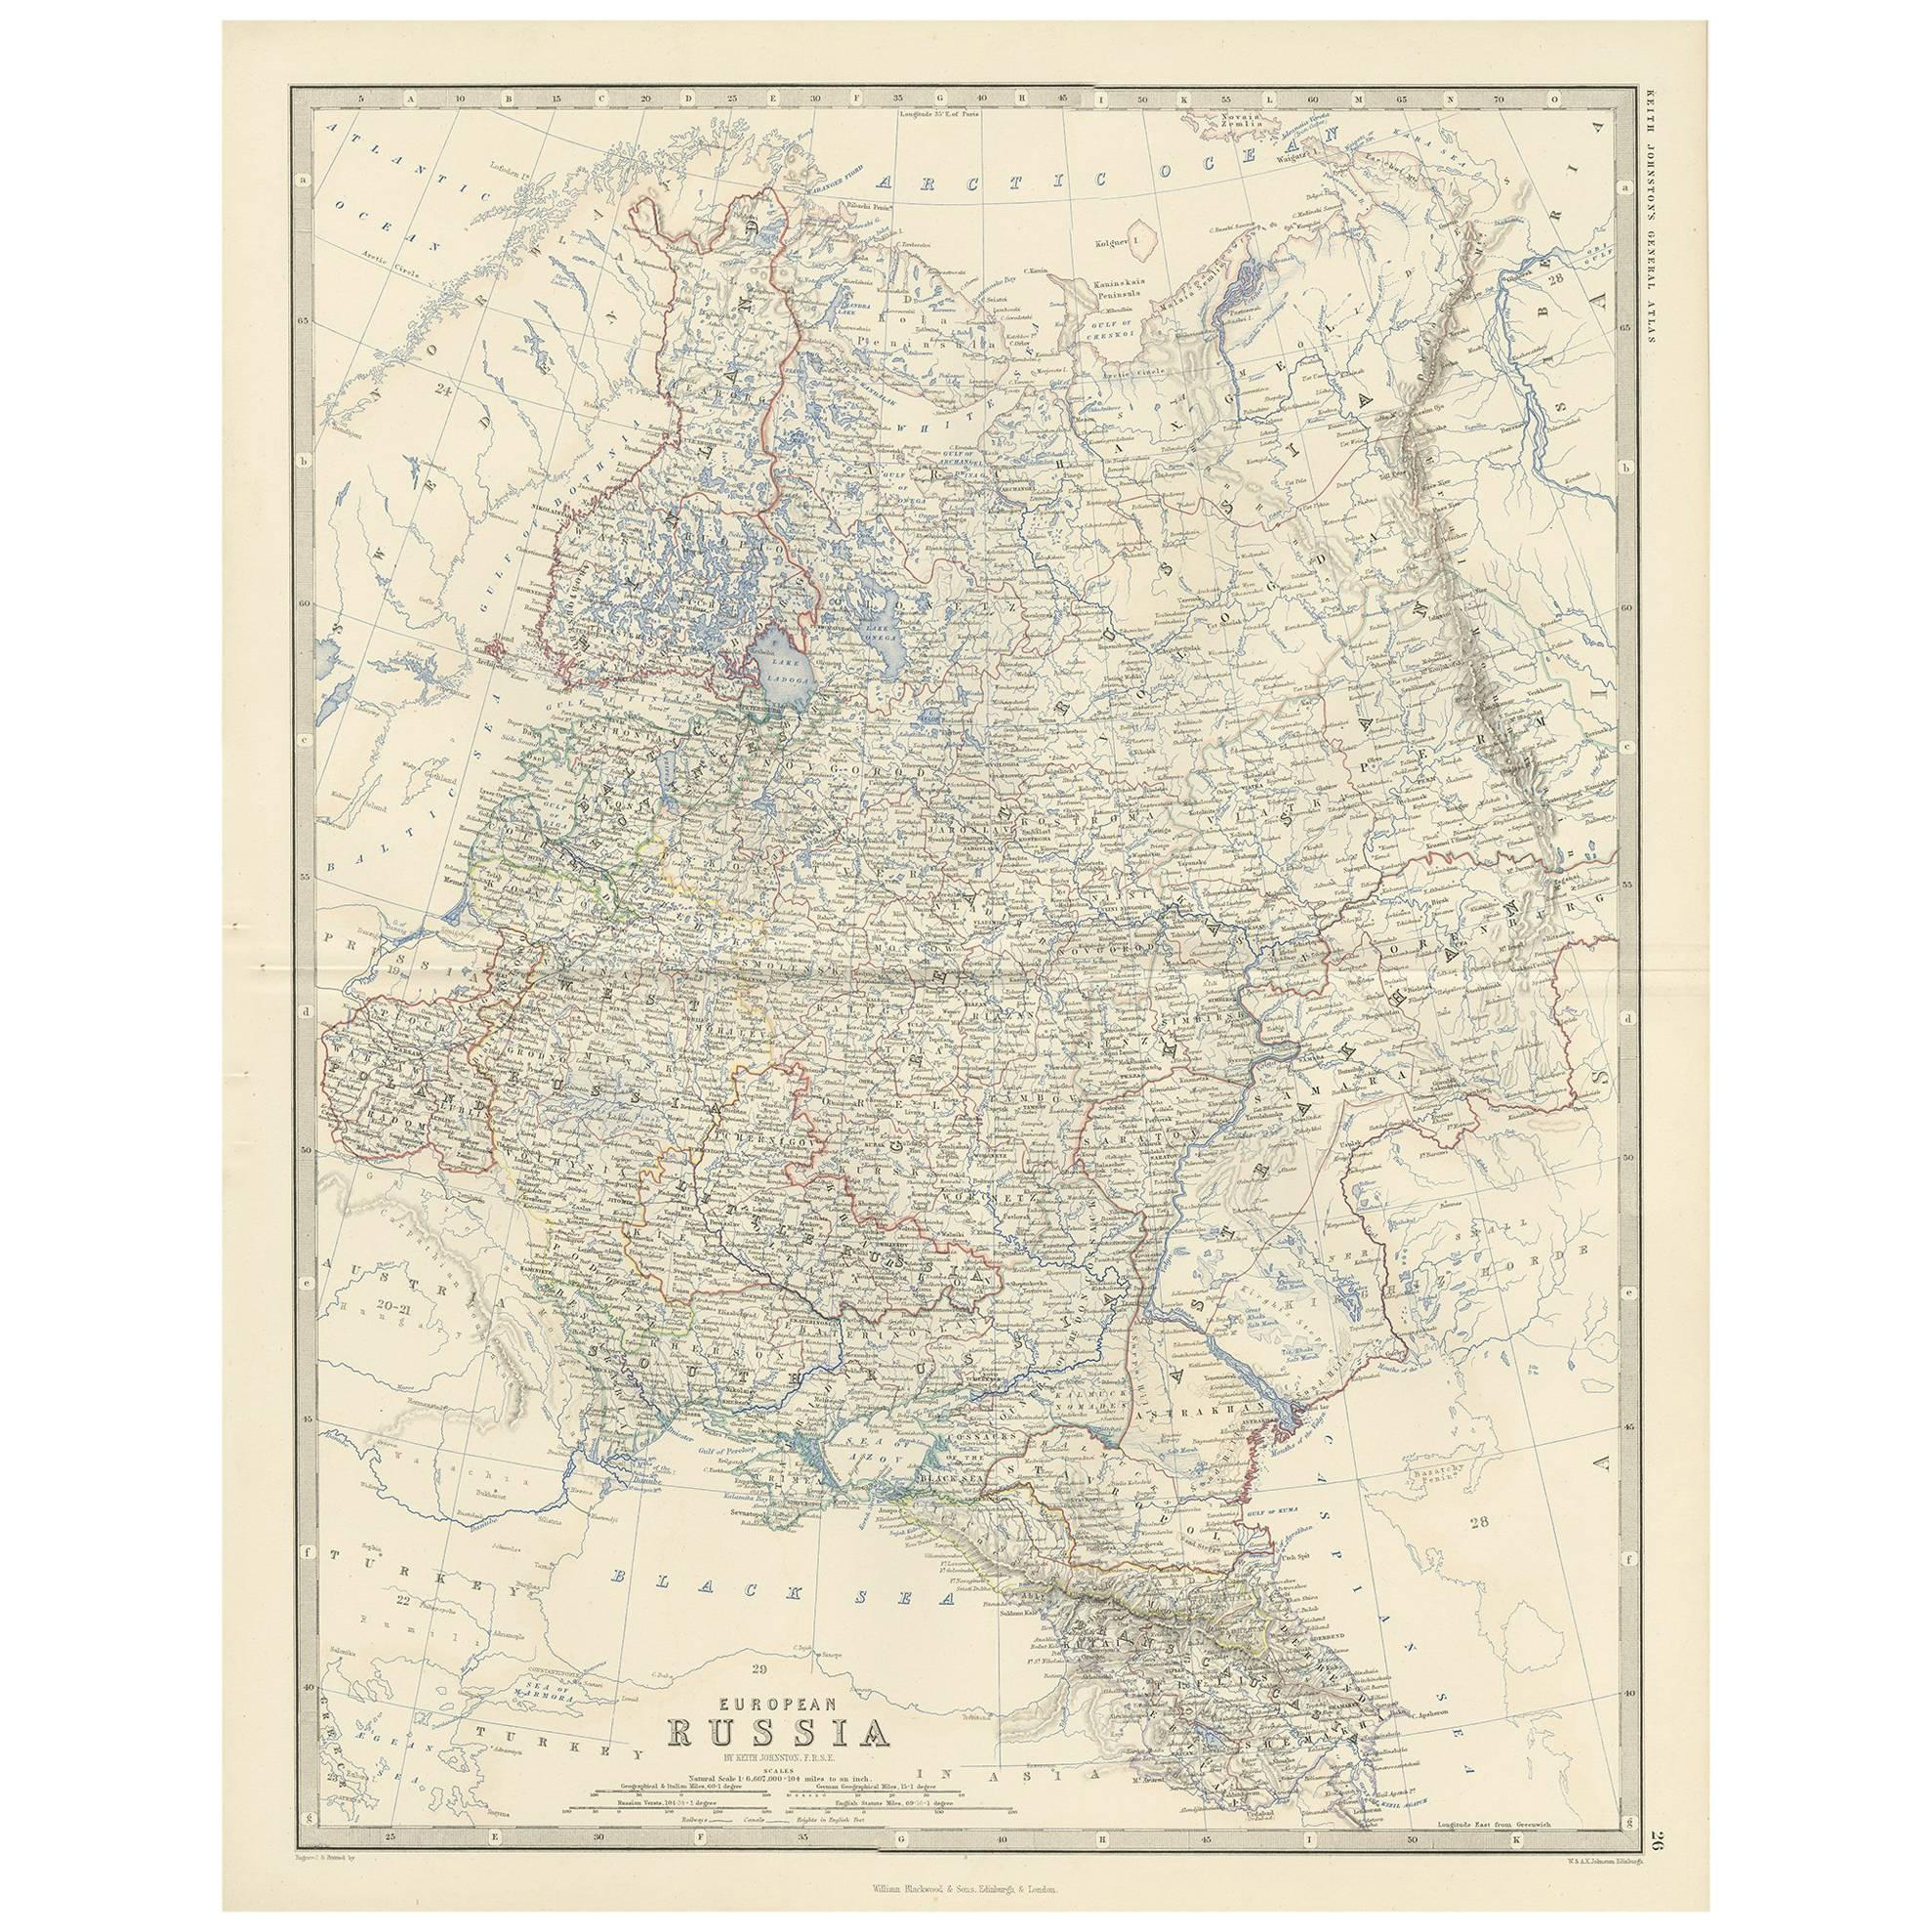 Turkey On Europe Map.Antique Map Of Turkey In Europe By A K Johnston For Sale At 1stdibs